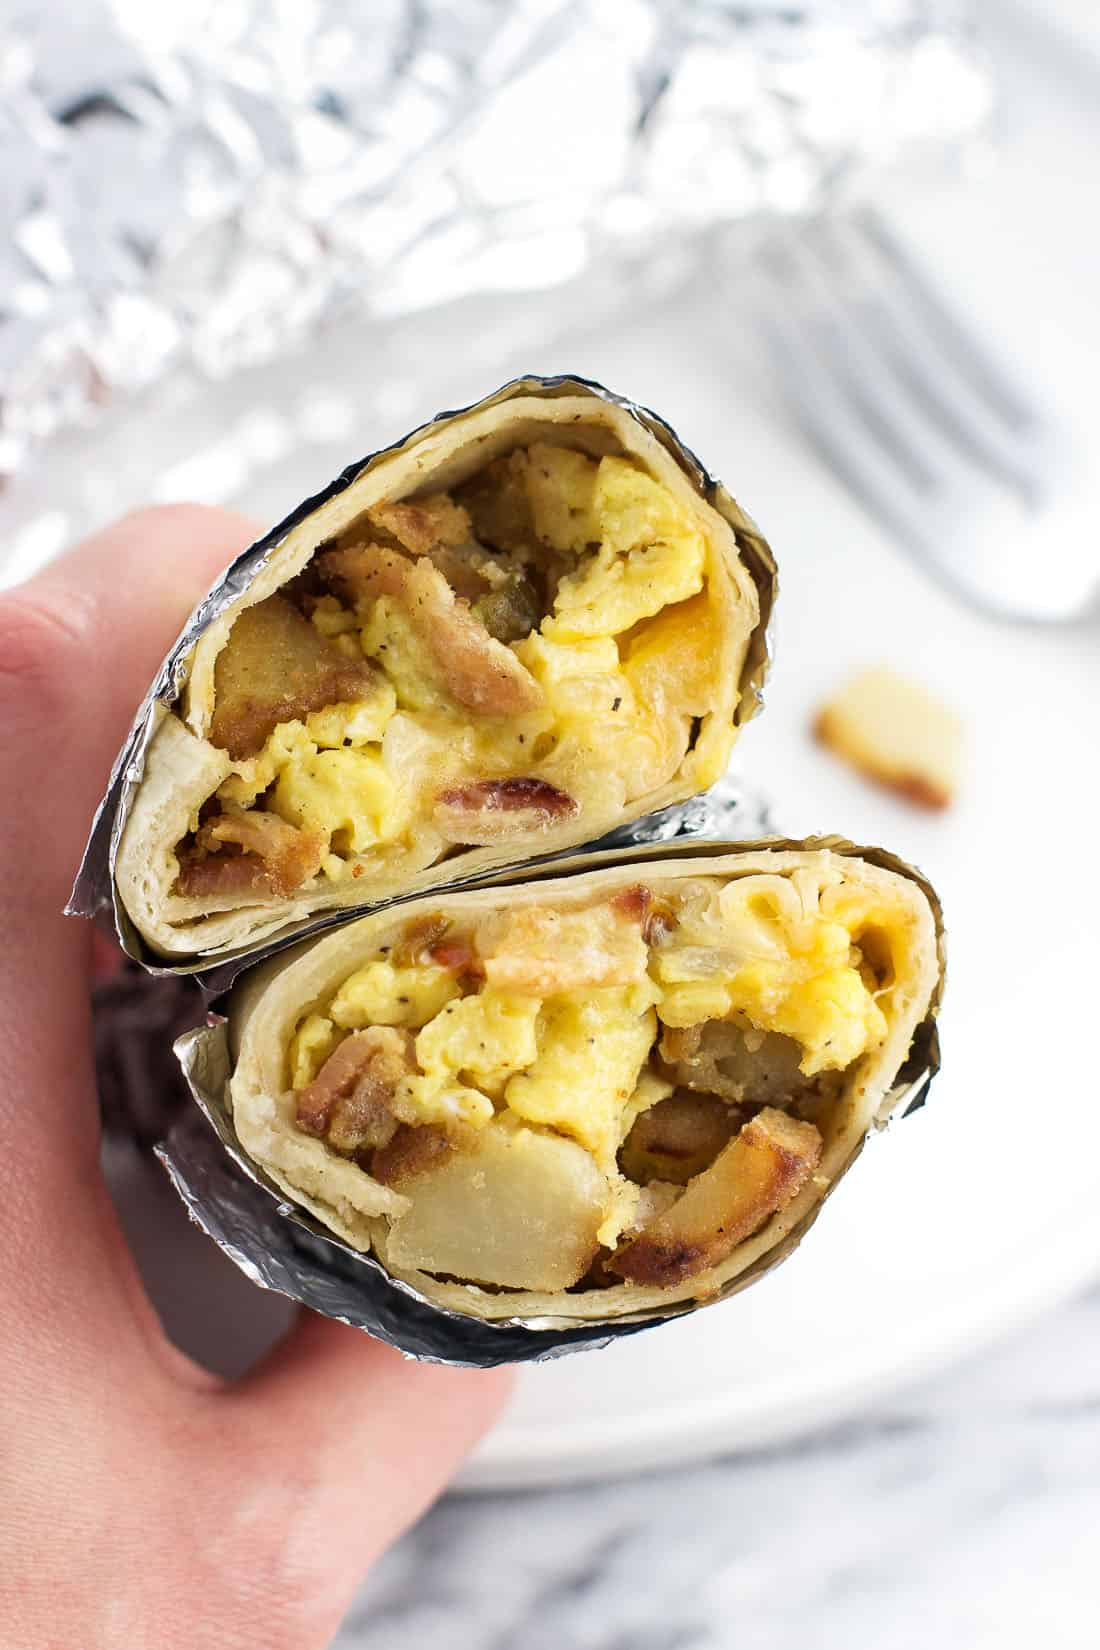 A hand holding a foil-wrapped breakfast burrito cut in half to show the egg, potato, meat, and cheese filling